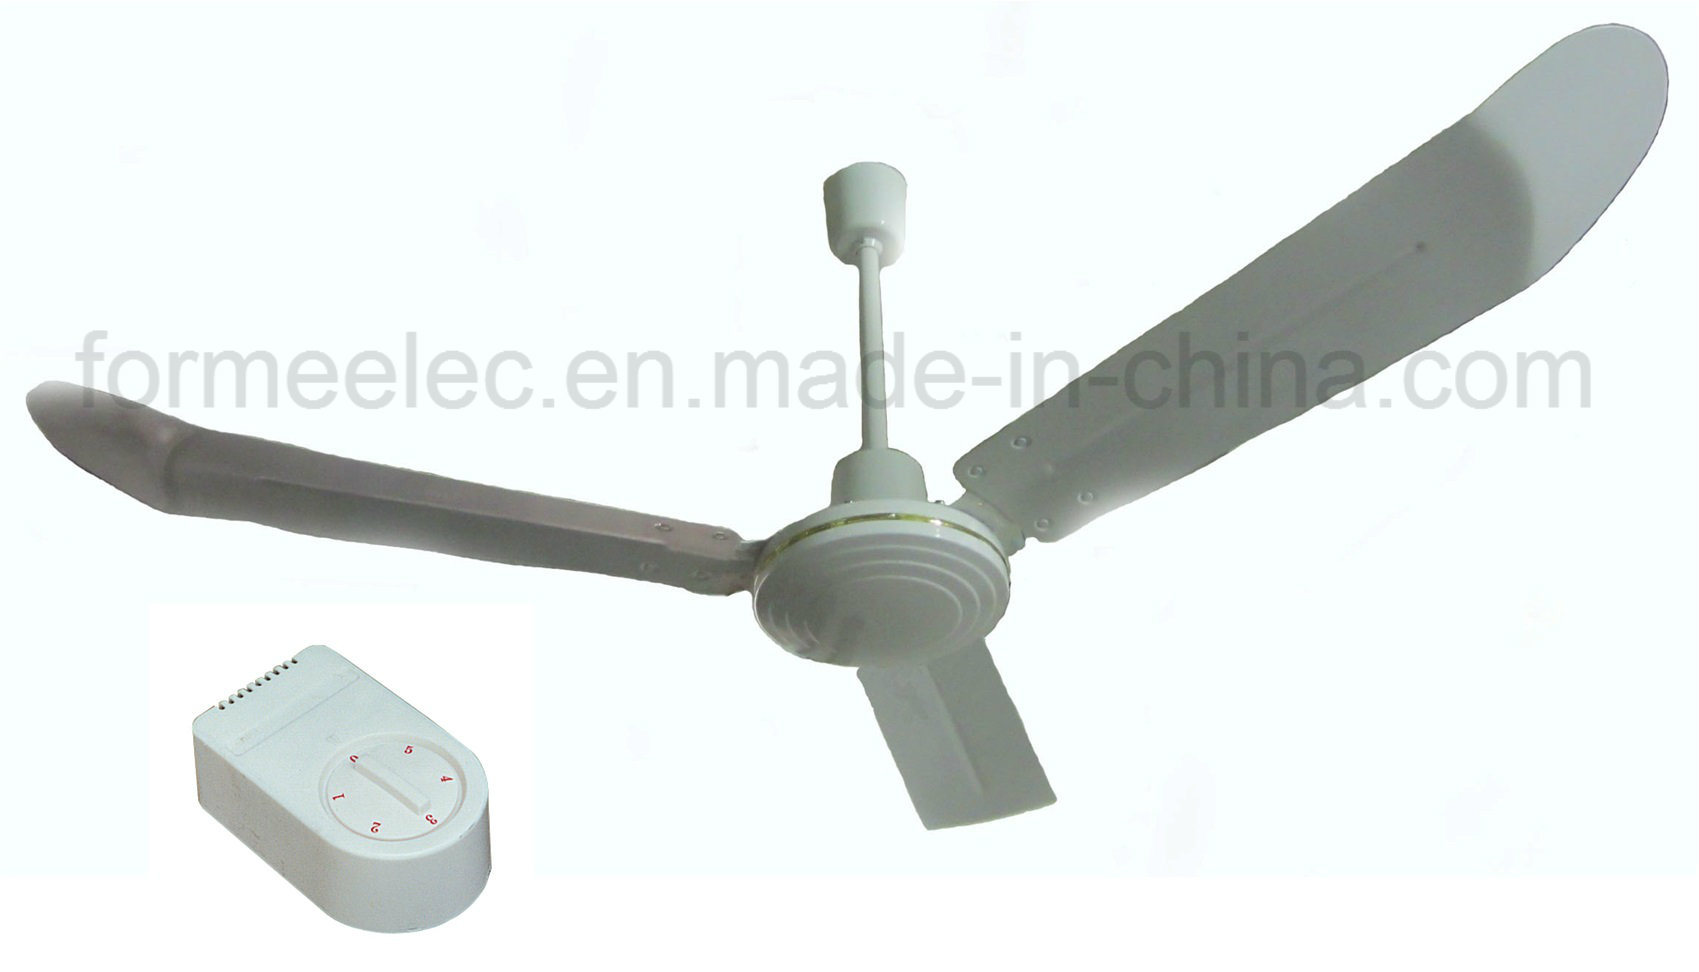 China 80w ac ceiling fan 56 electrical fan electric fan china china 80w ac ceiling fan 56 electrical fan electric fan china ceiling fan electric fan aloadofball Image collections